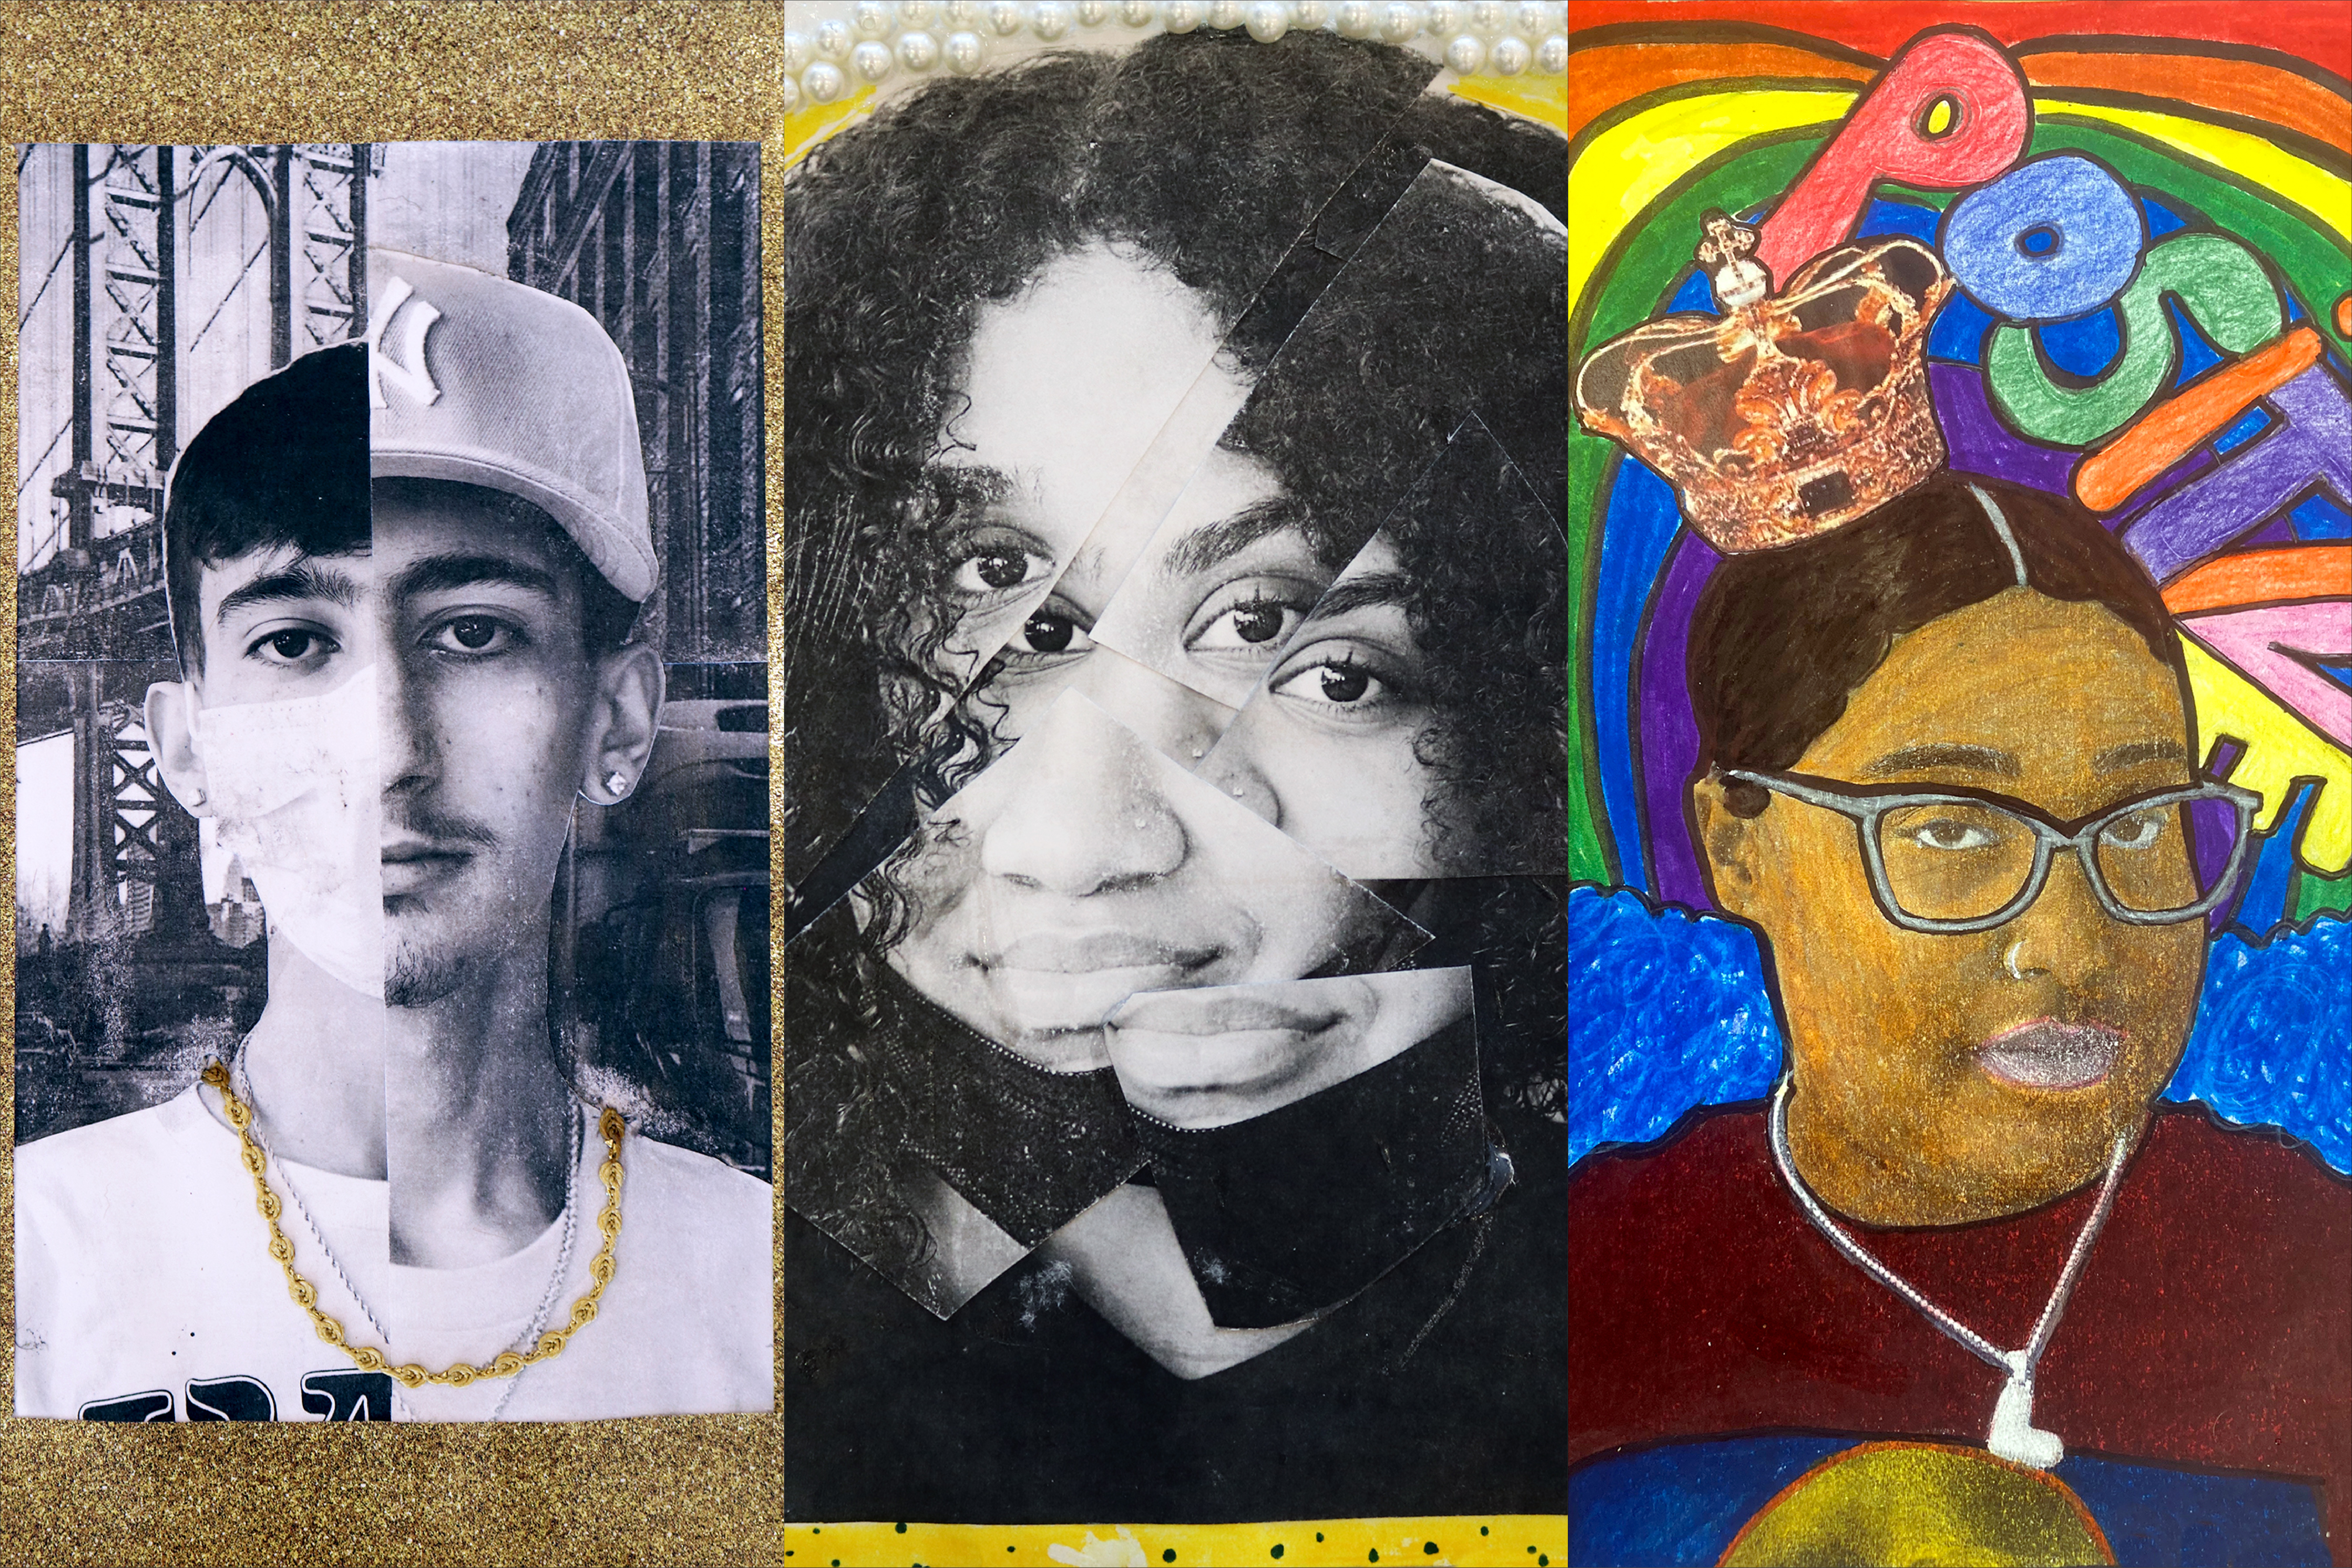 A triptych of three colorful self-portraits, made by students of Voyages Prep in Elmhurst, Queens.